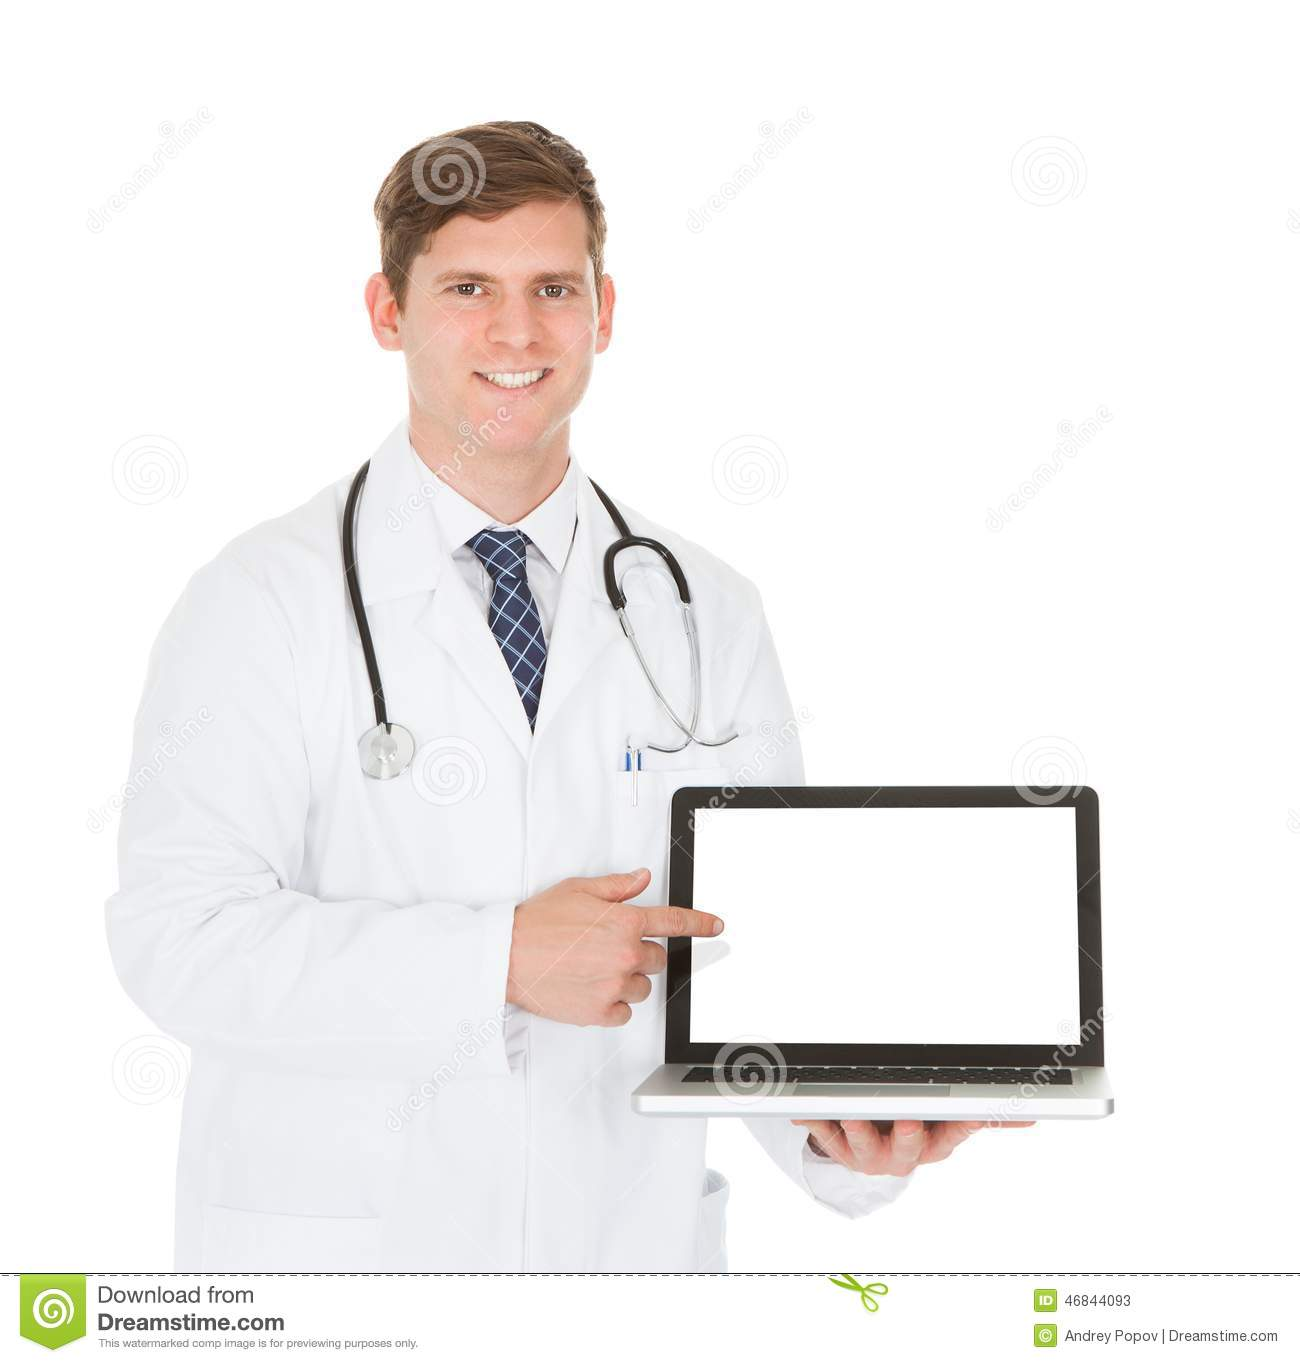 Male doctor showing on laptop